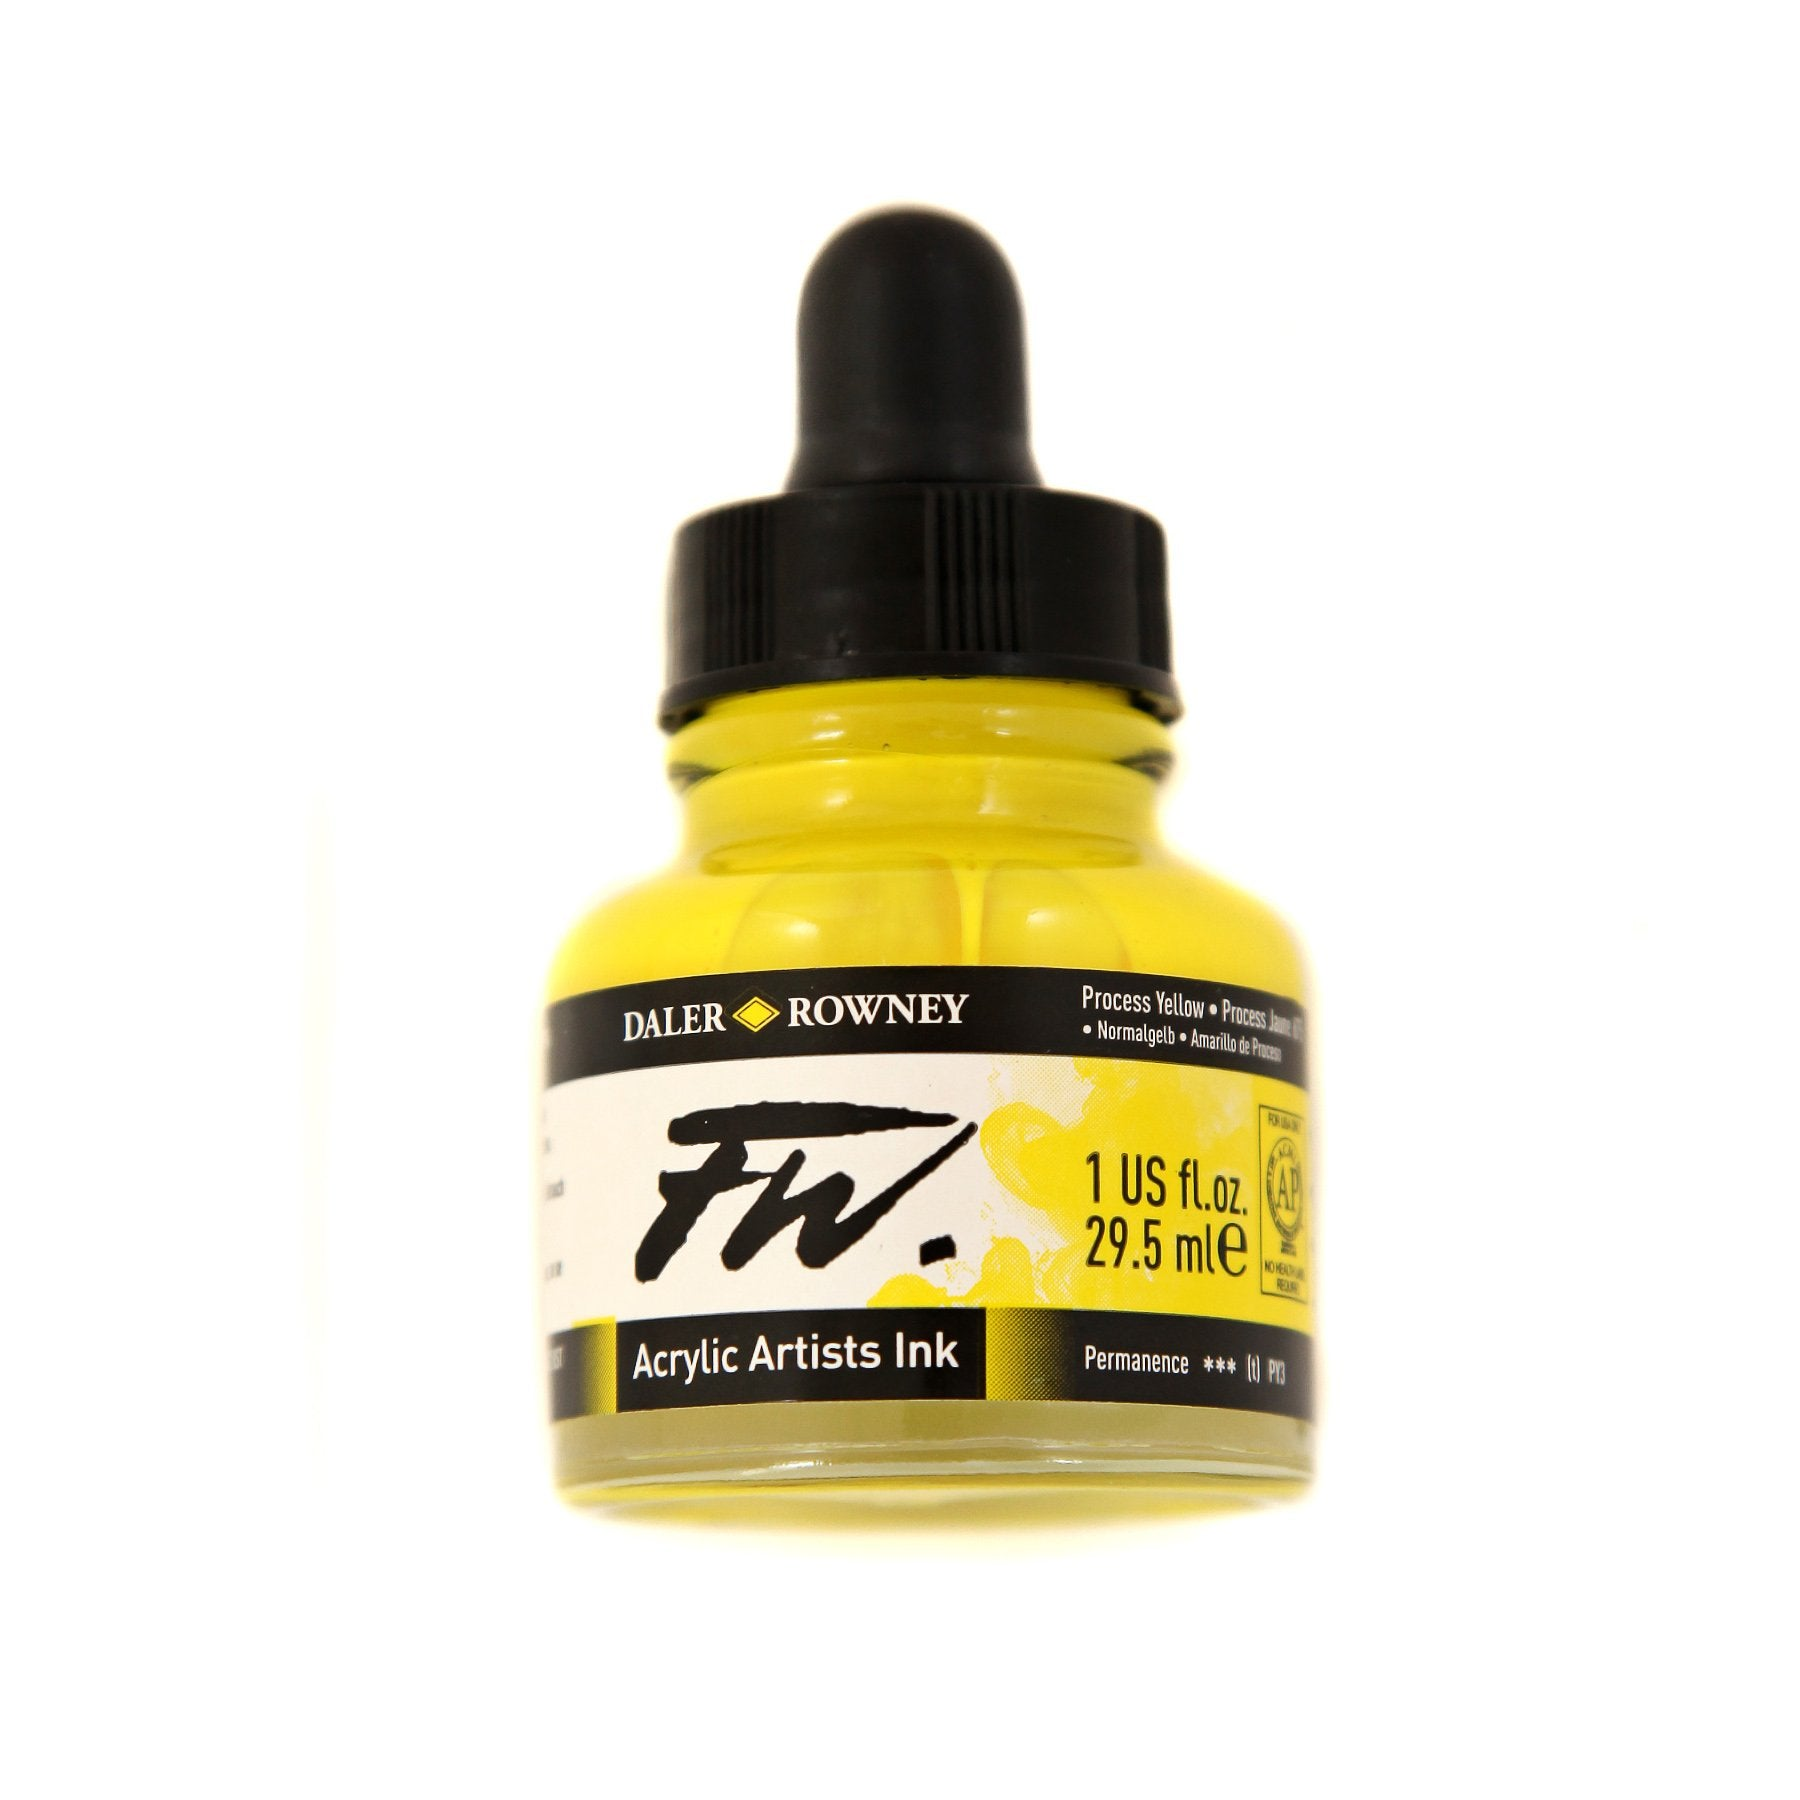 Daler-Rowney FW Acrylic Artists Ink, 1 oz. Dropper-Top Bottle, Process Yellow